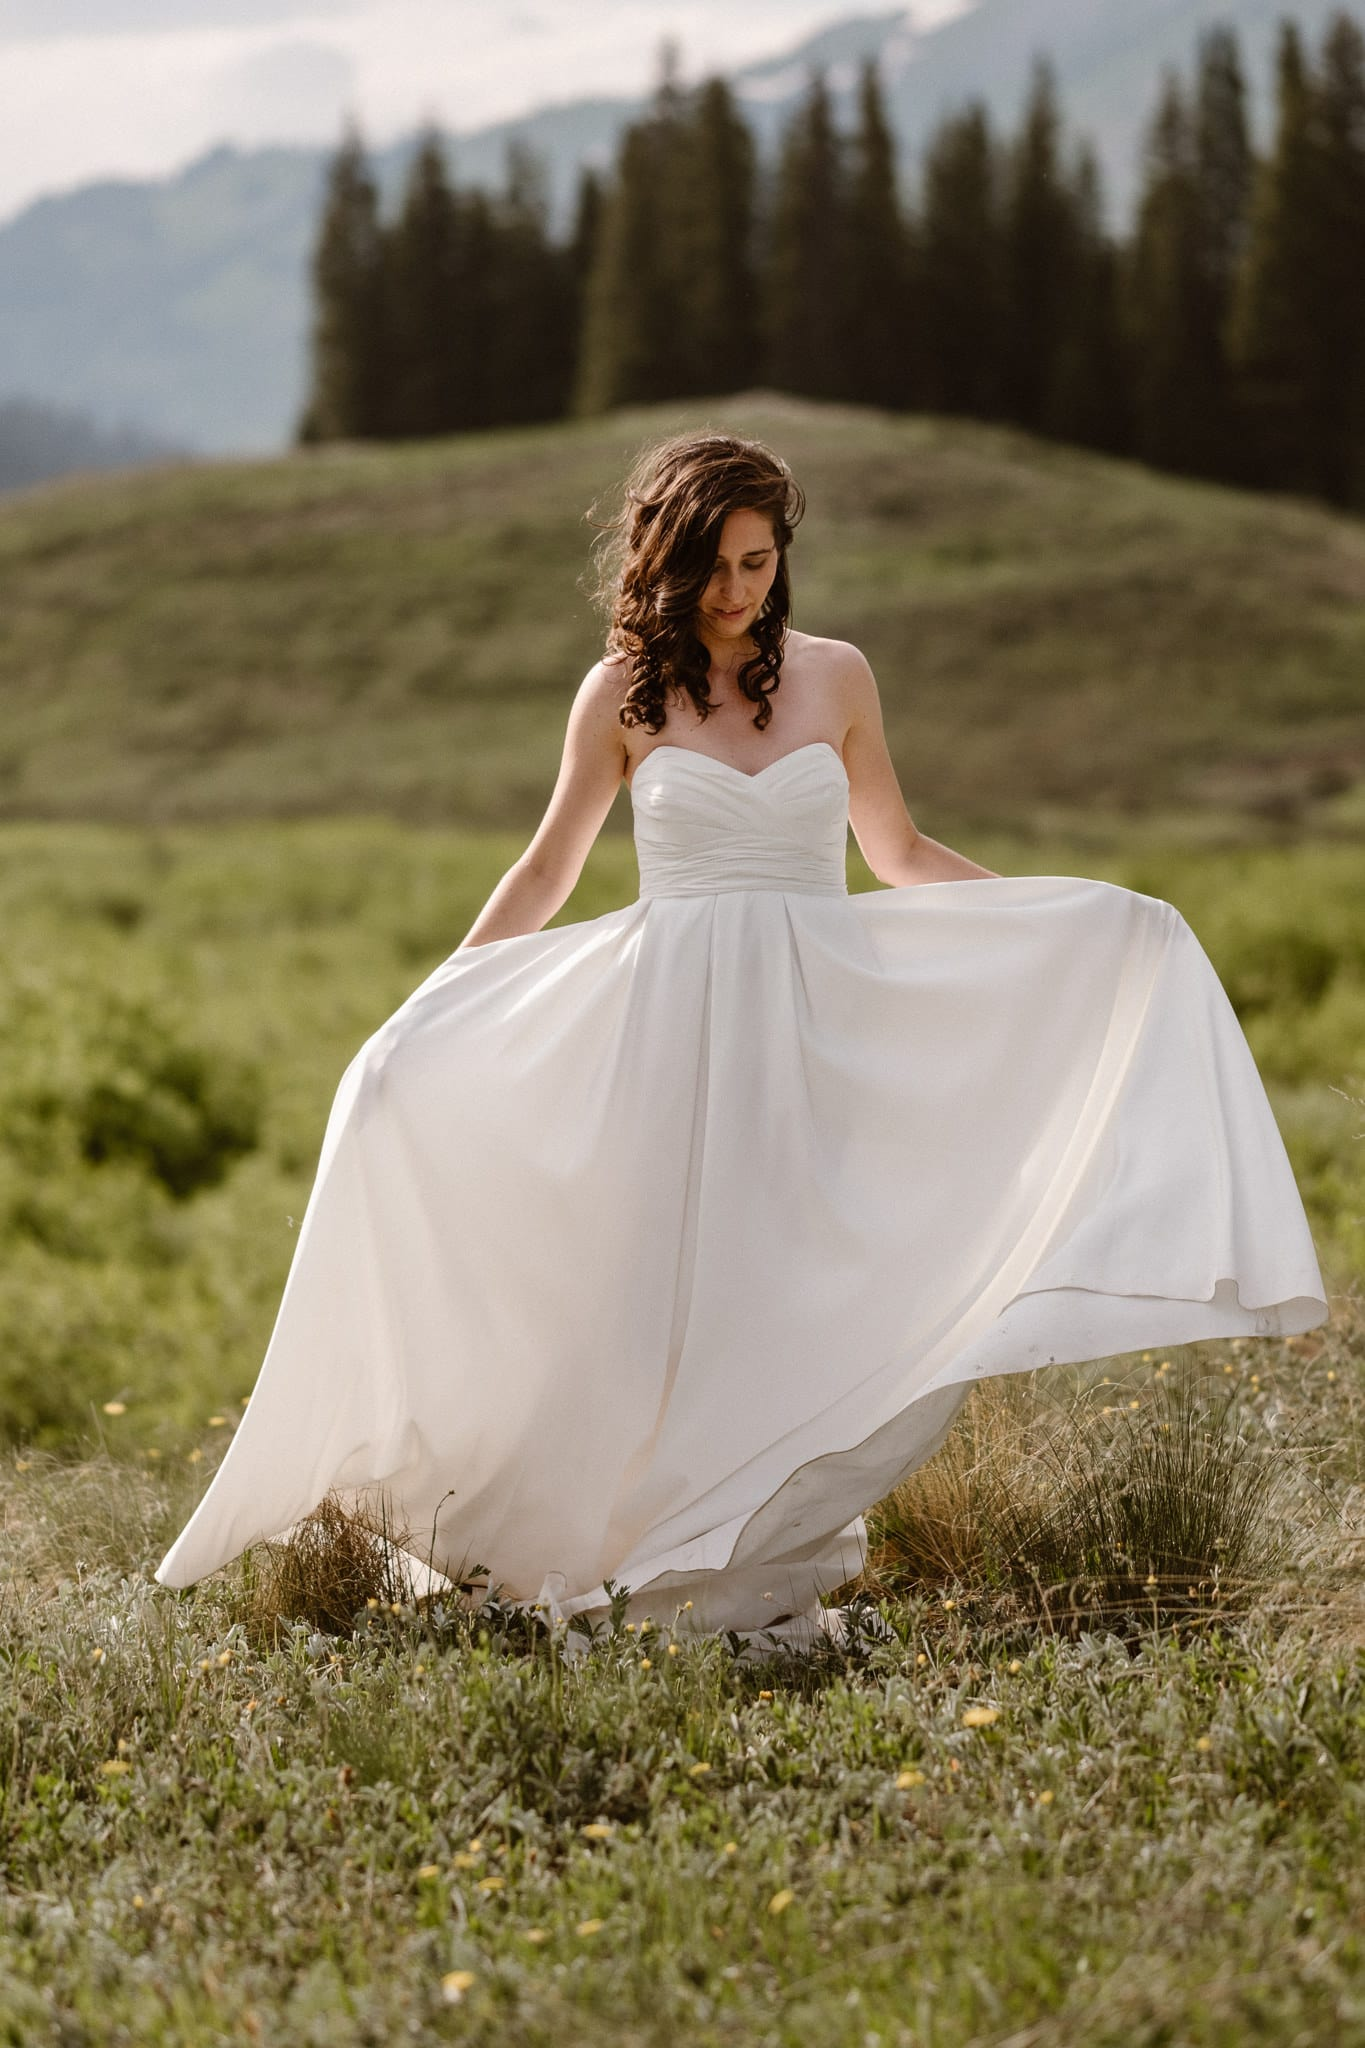 Crested Butte elopement photographer, Colorado adventure wedding photographer, bride twirling in dress with pockets